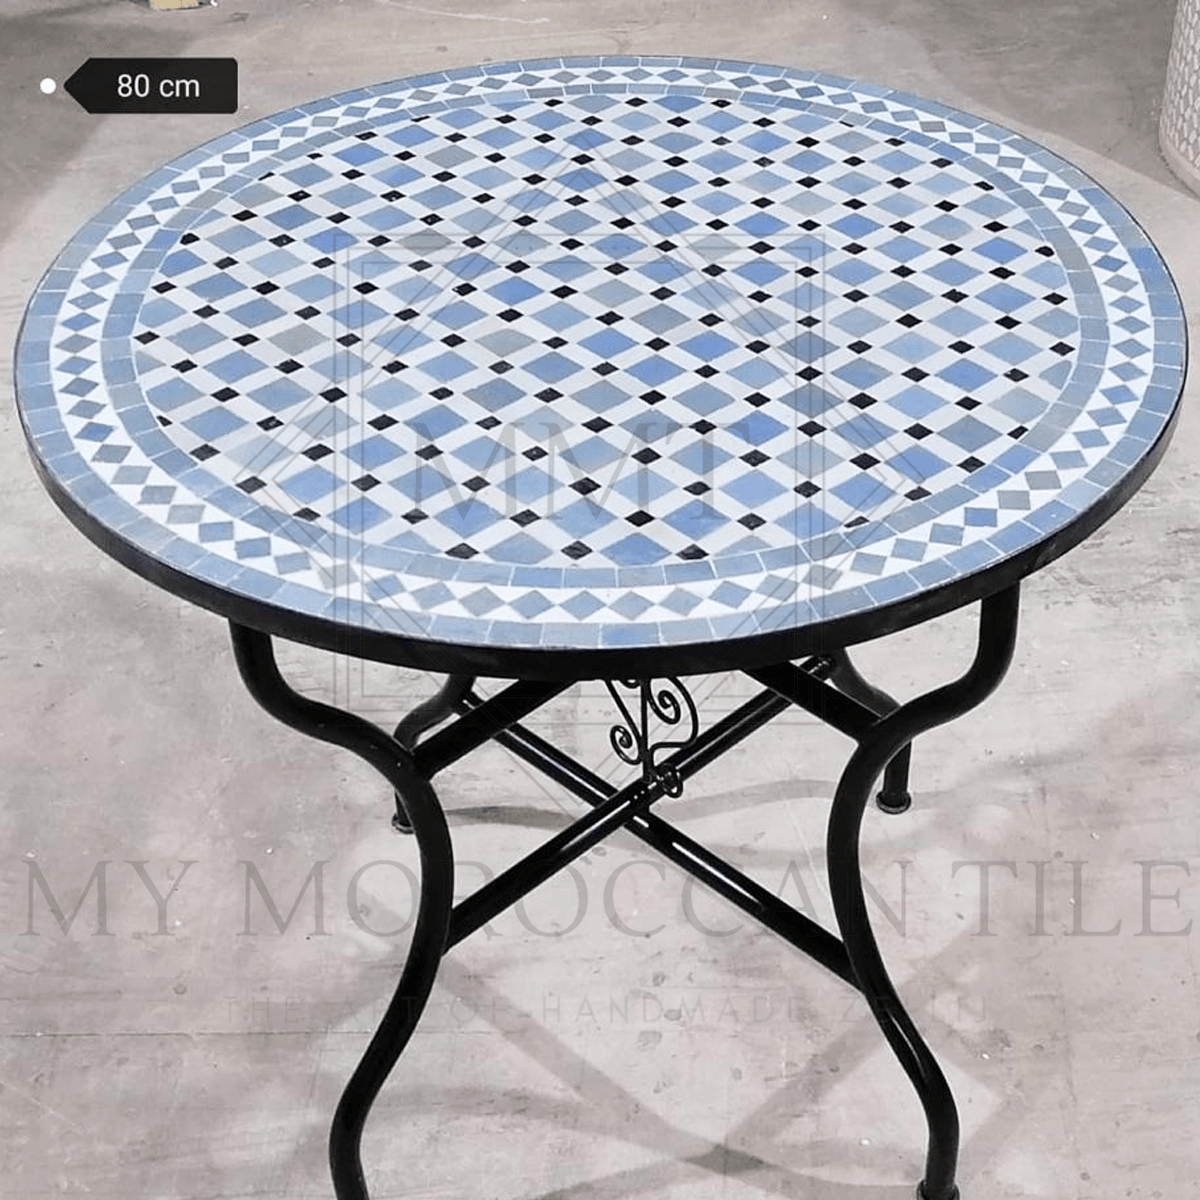 Handmade Moroccan Mosaic Table 2104-05